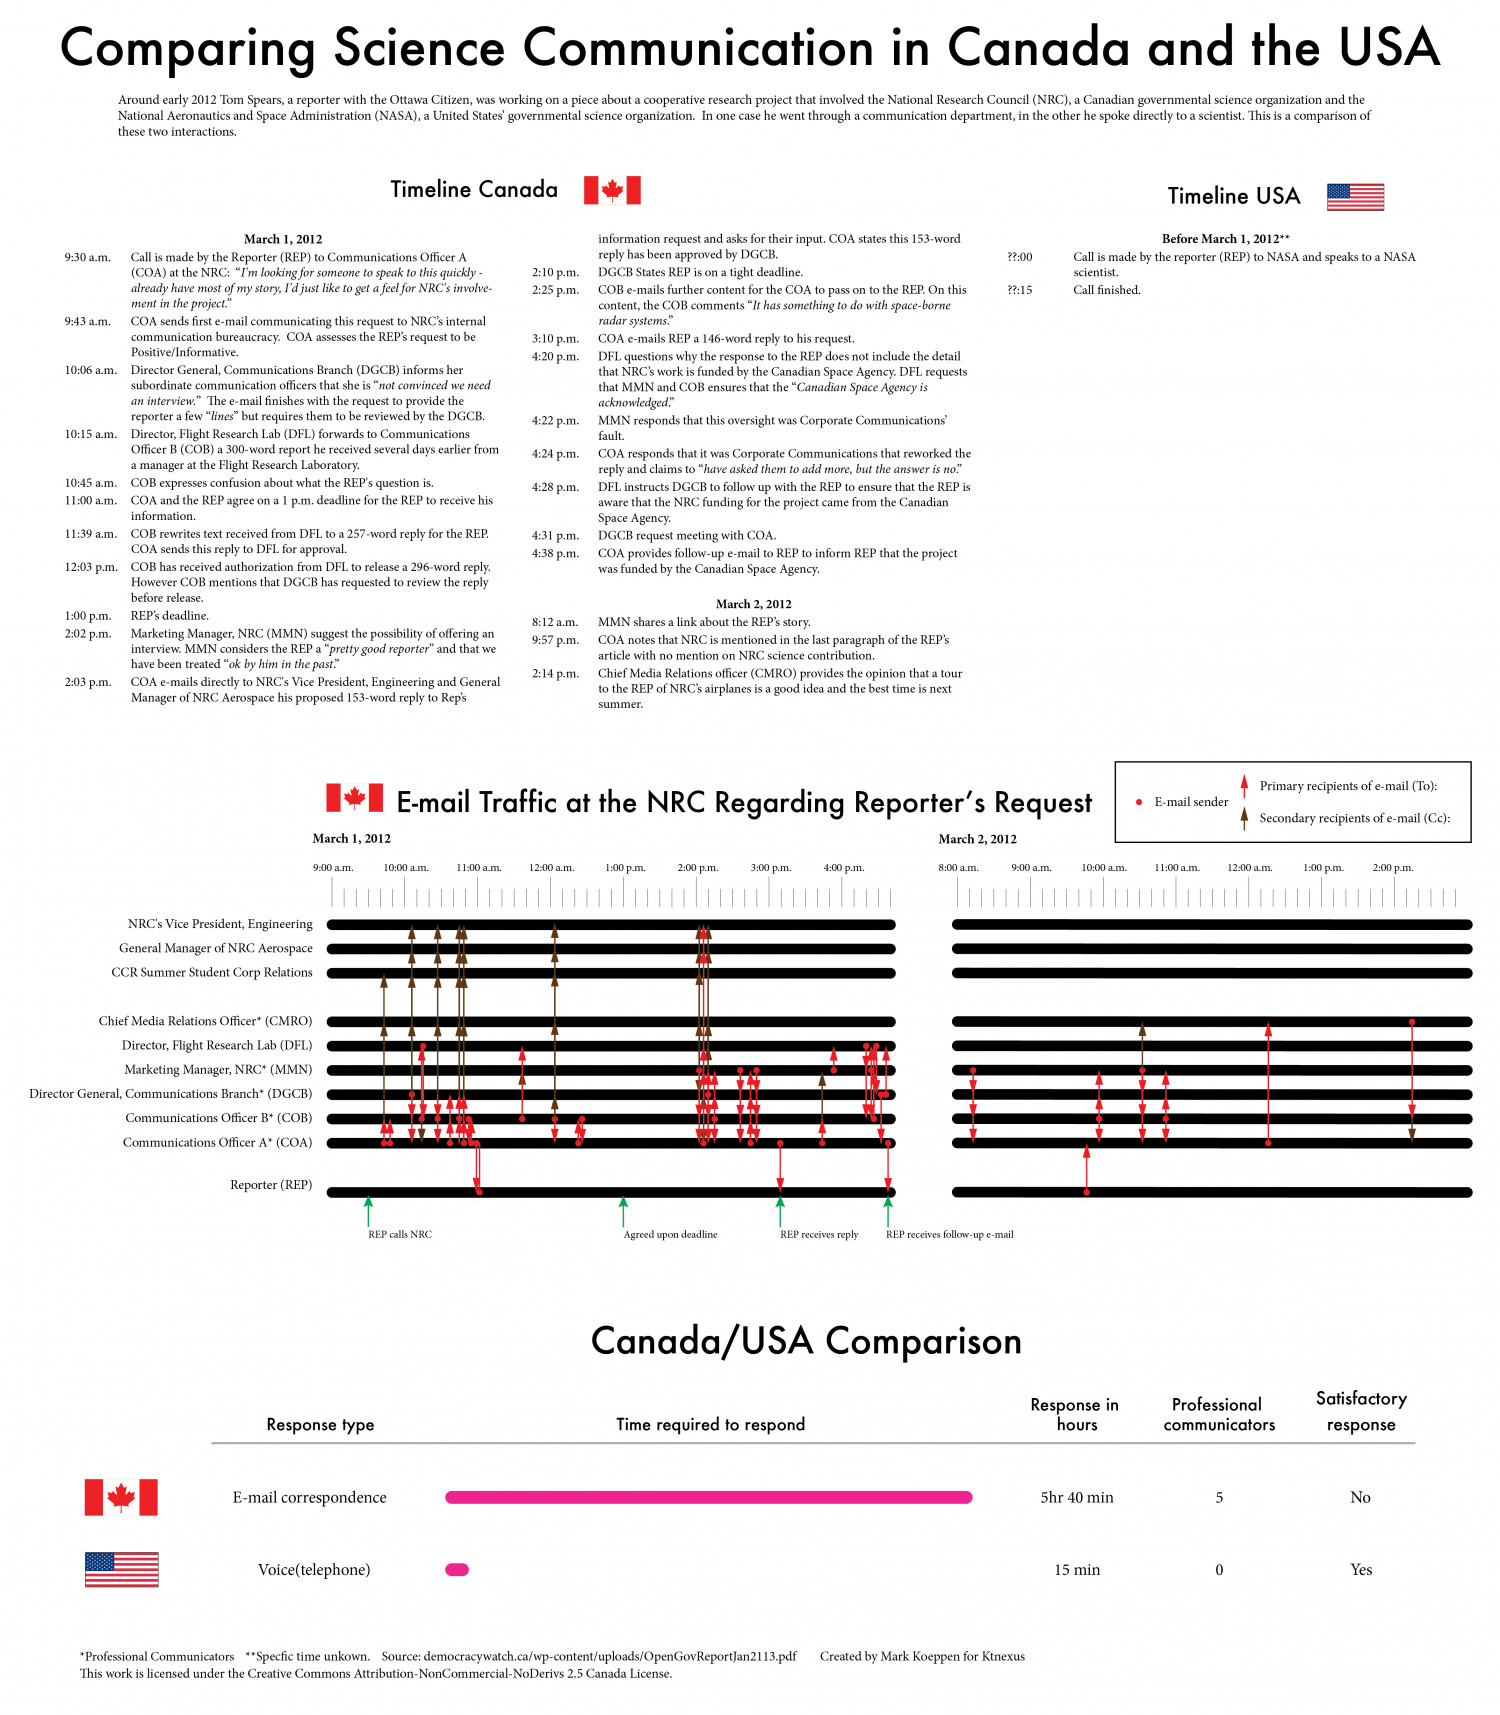 Comparing Science Communication in Canada and the USA Infographic